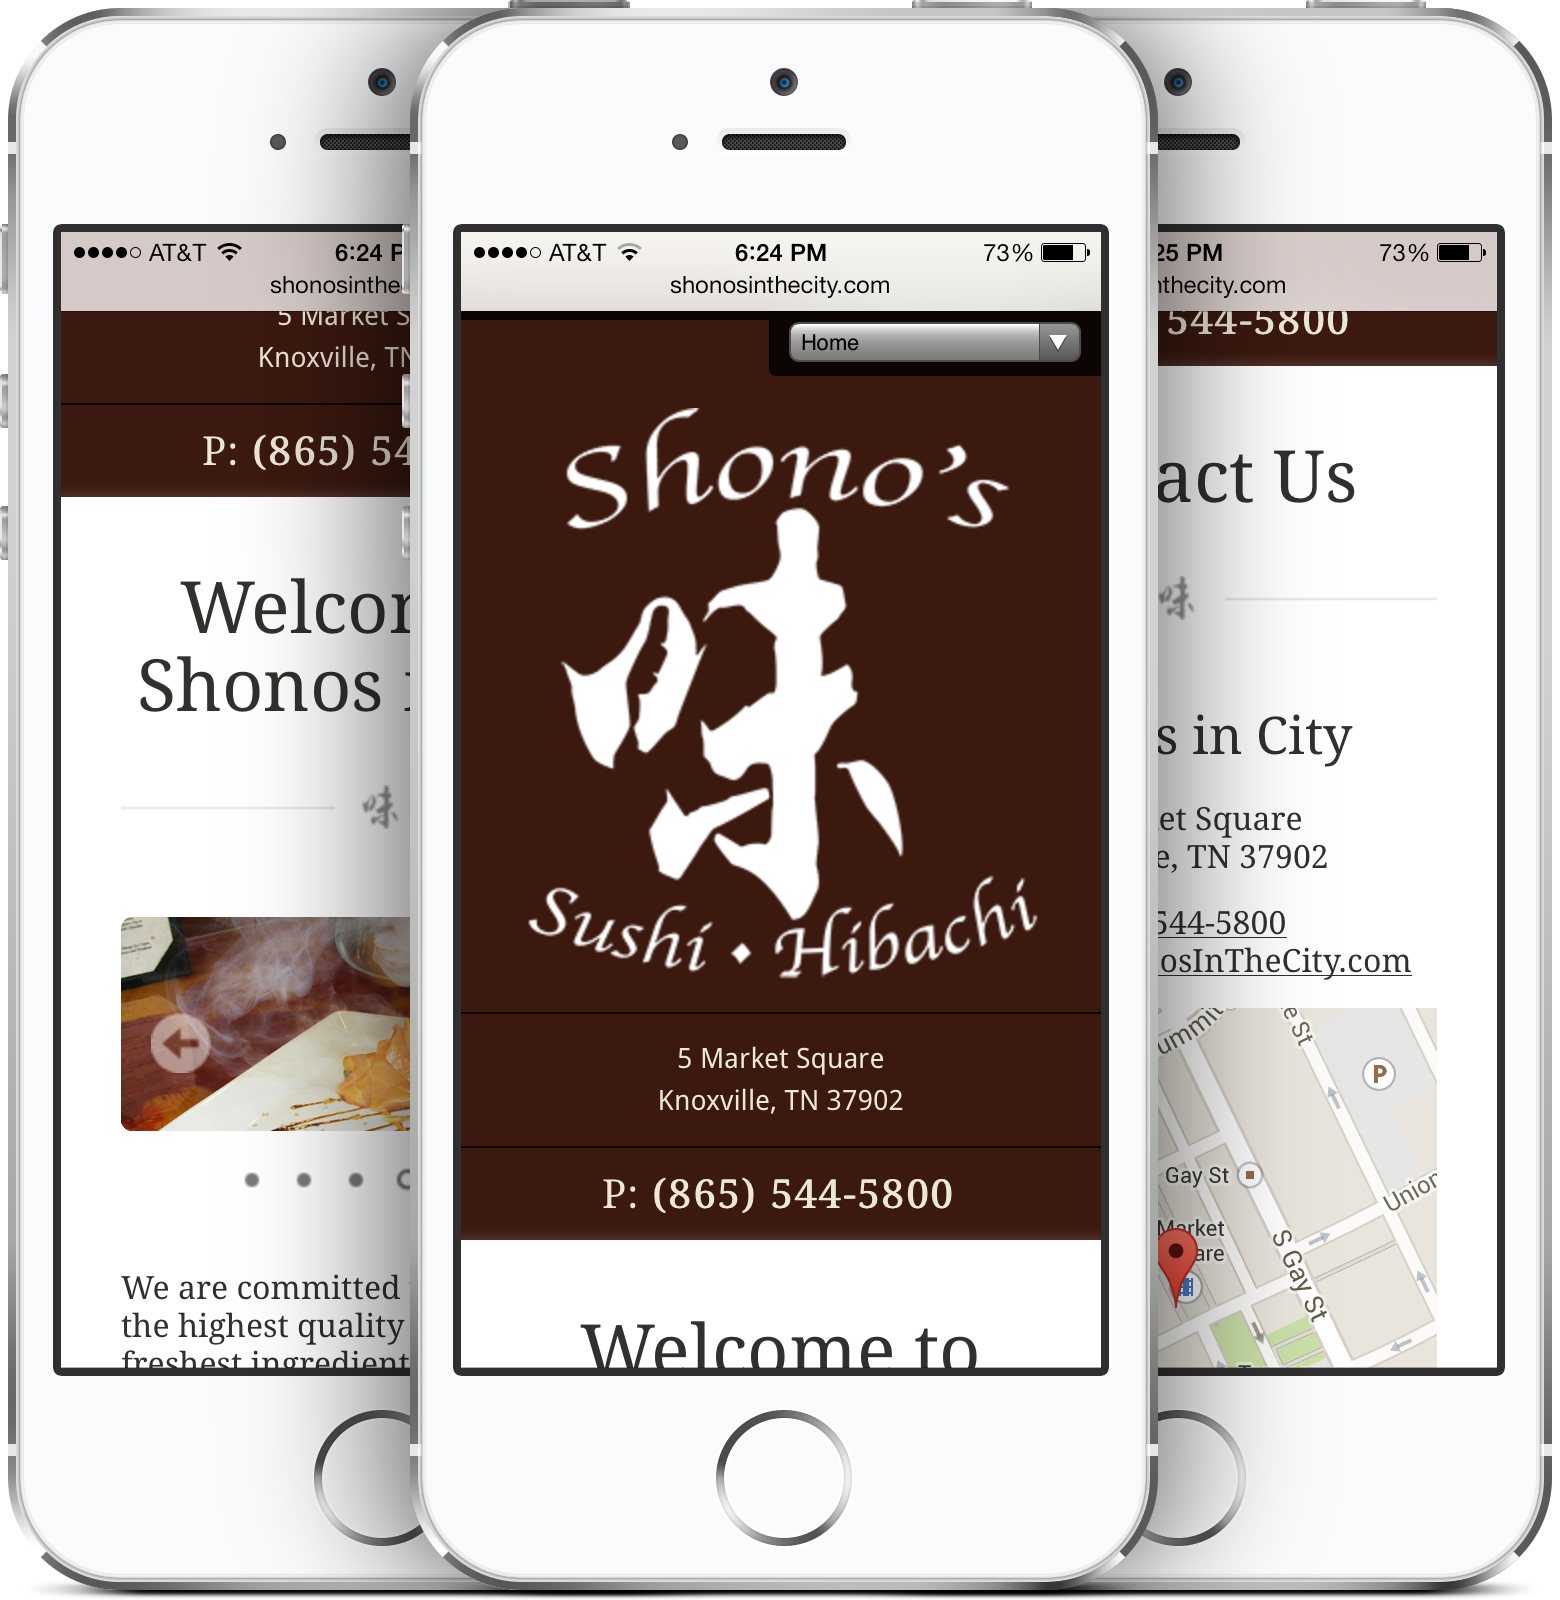 Shonos in City on an iPhone